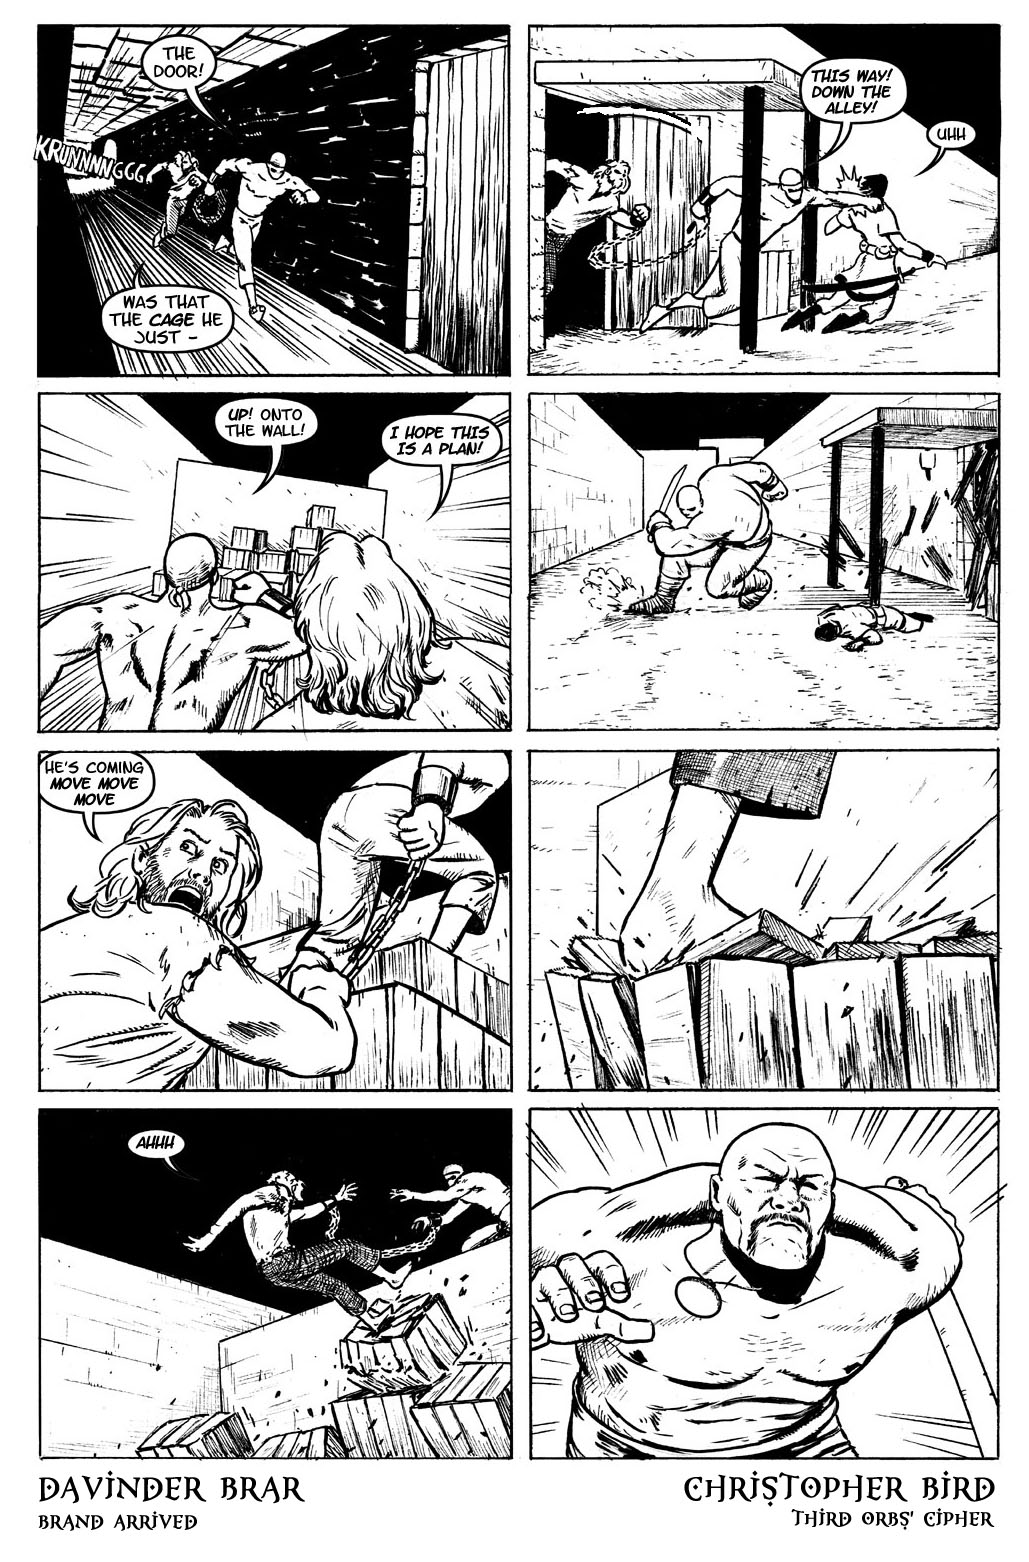 Book 2, page 21